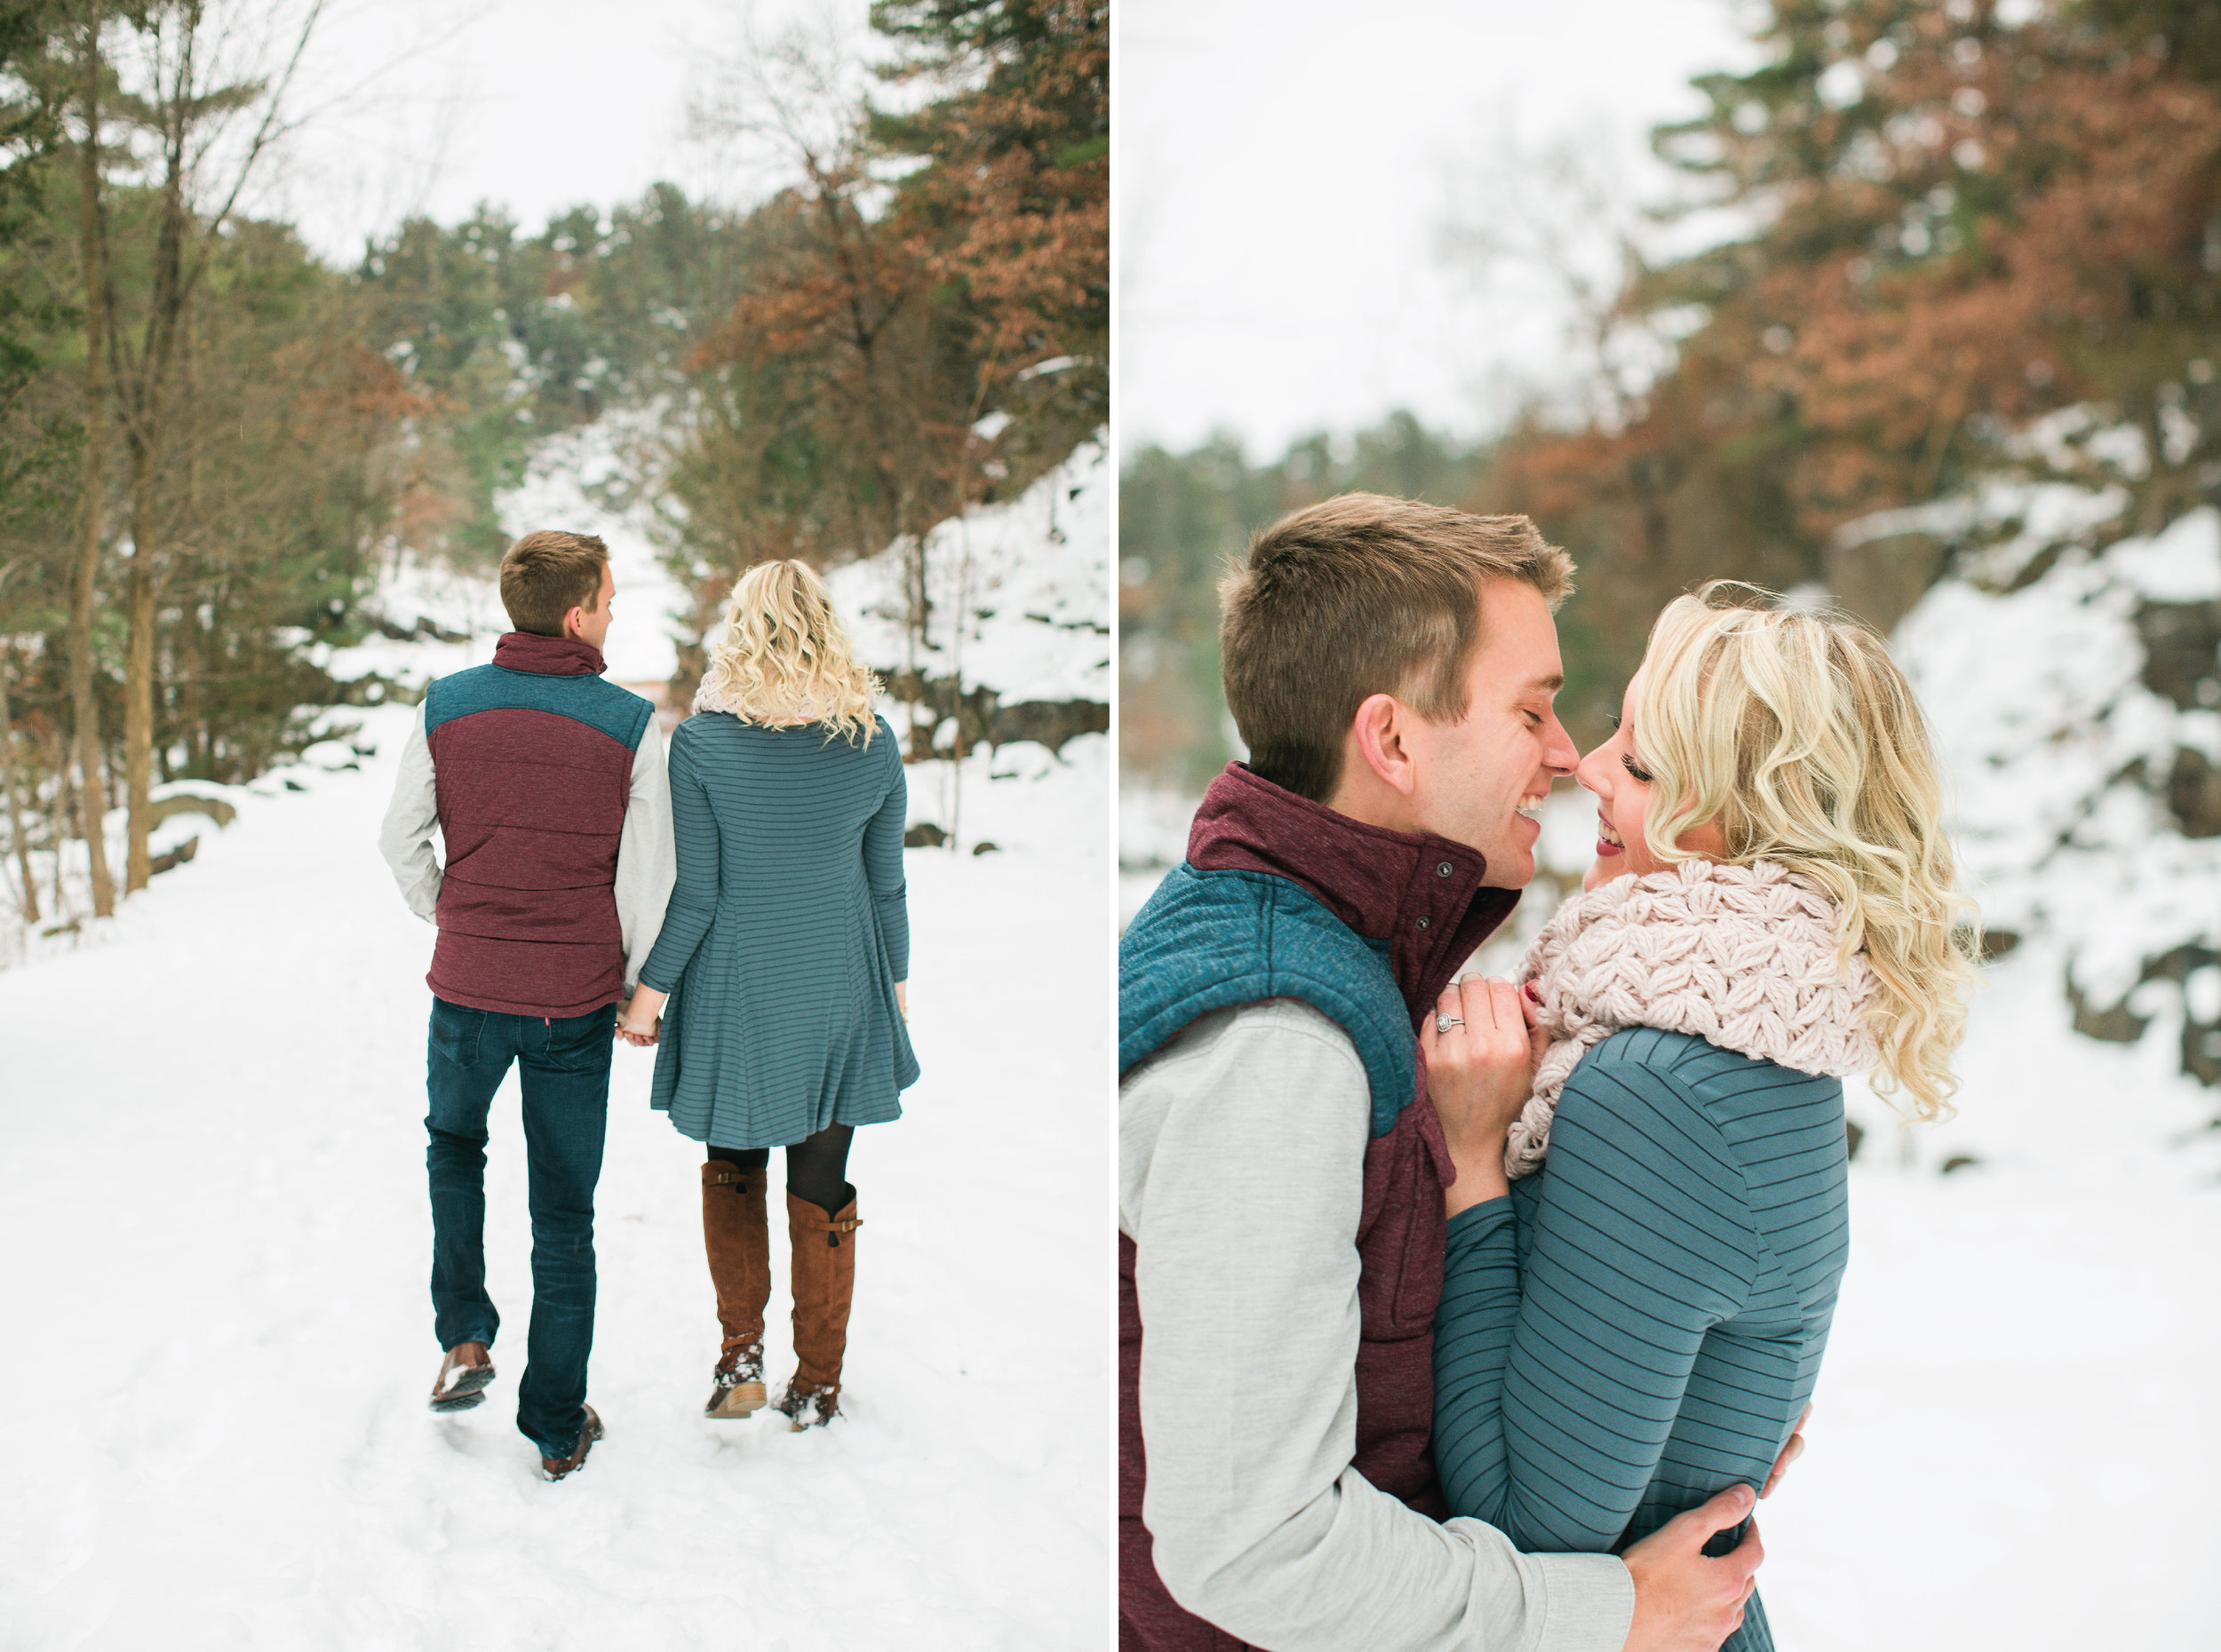 Minnesota snowy winter engagement photos in Taylors Falls woods walking and snuggling